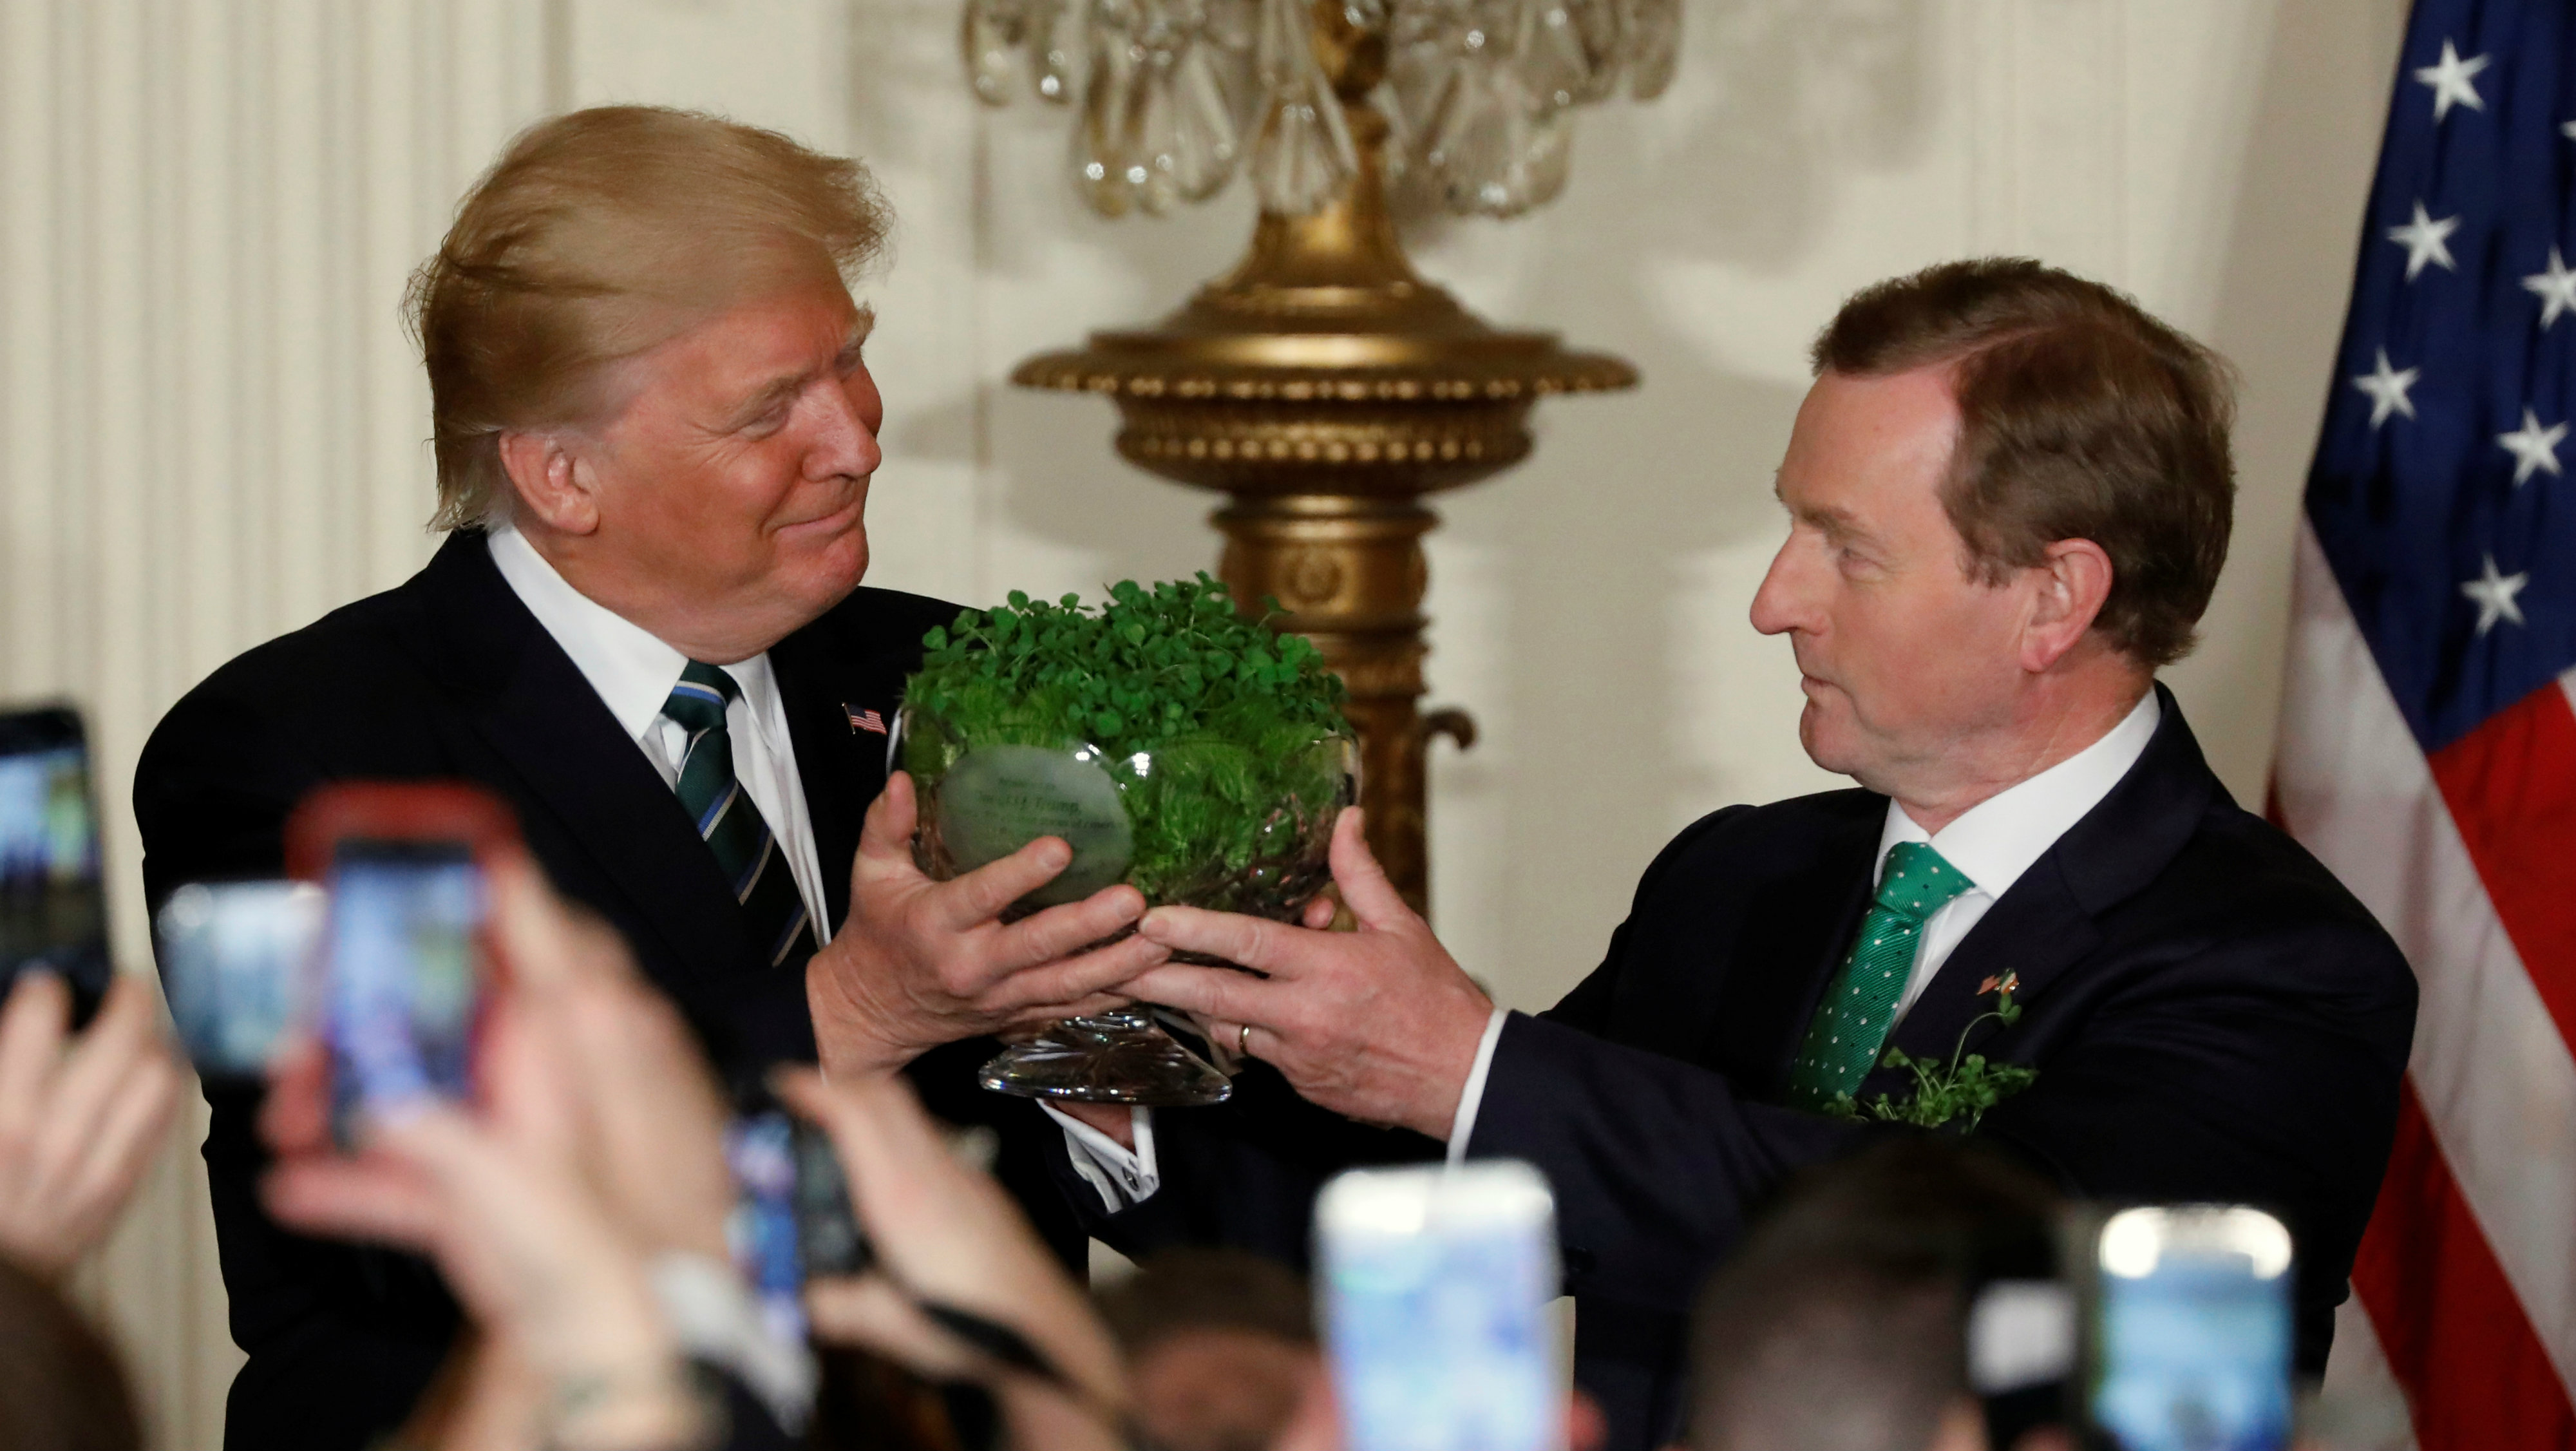 Ireland's Prime Minister Enda Kenny (R) presents a traditional gift of a bowl of shamrocks to U.S. President Donald Trump during a St. Patrick's Day reception at the White House in Washington, U.S. March 16, 2017.